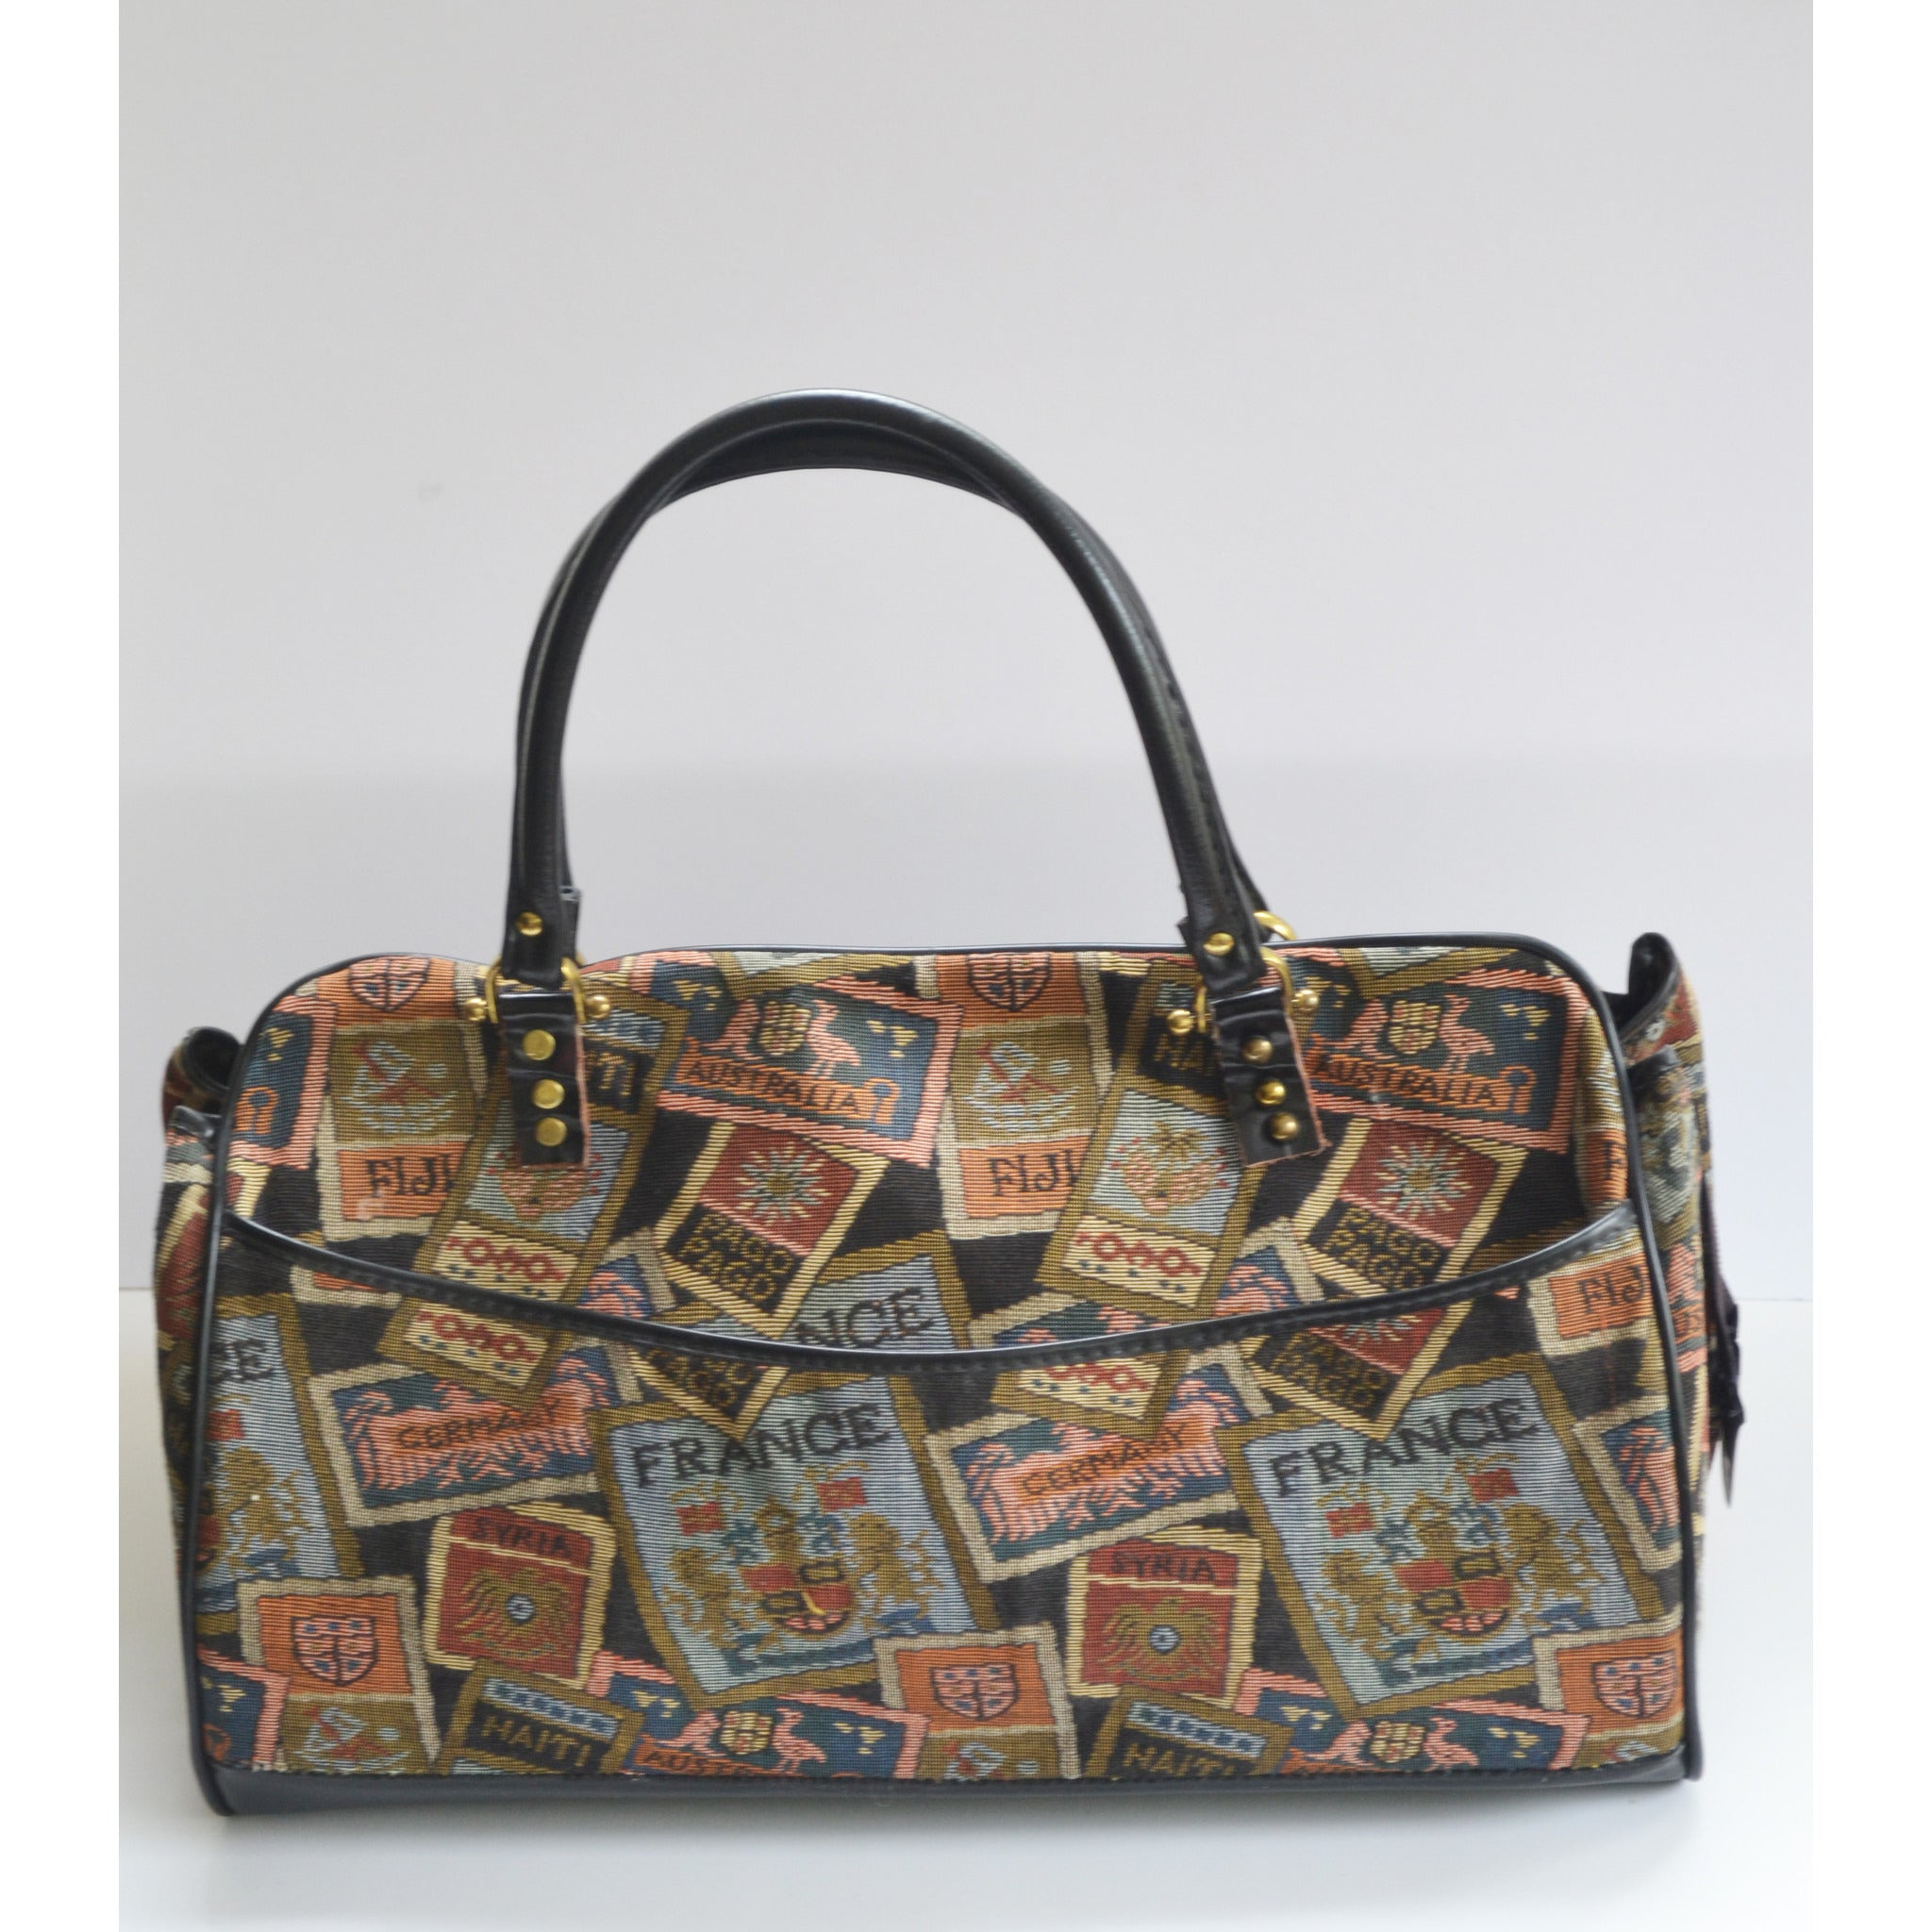 Vintage World Travel Carry-All Bag By Munro Tapestry